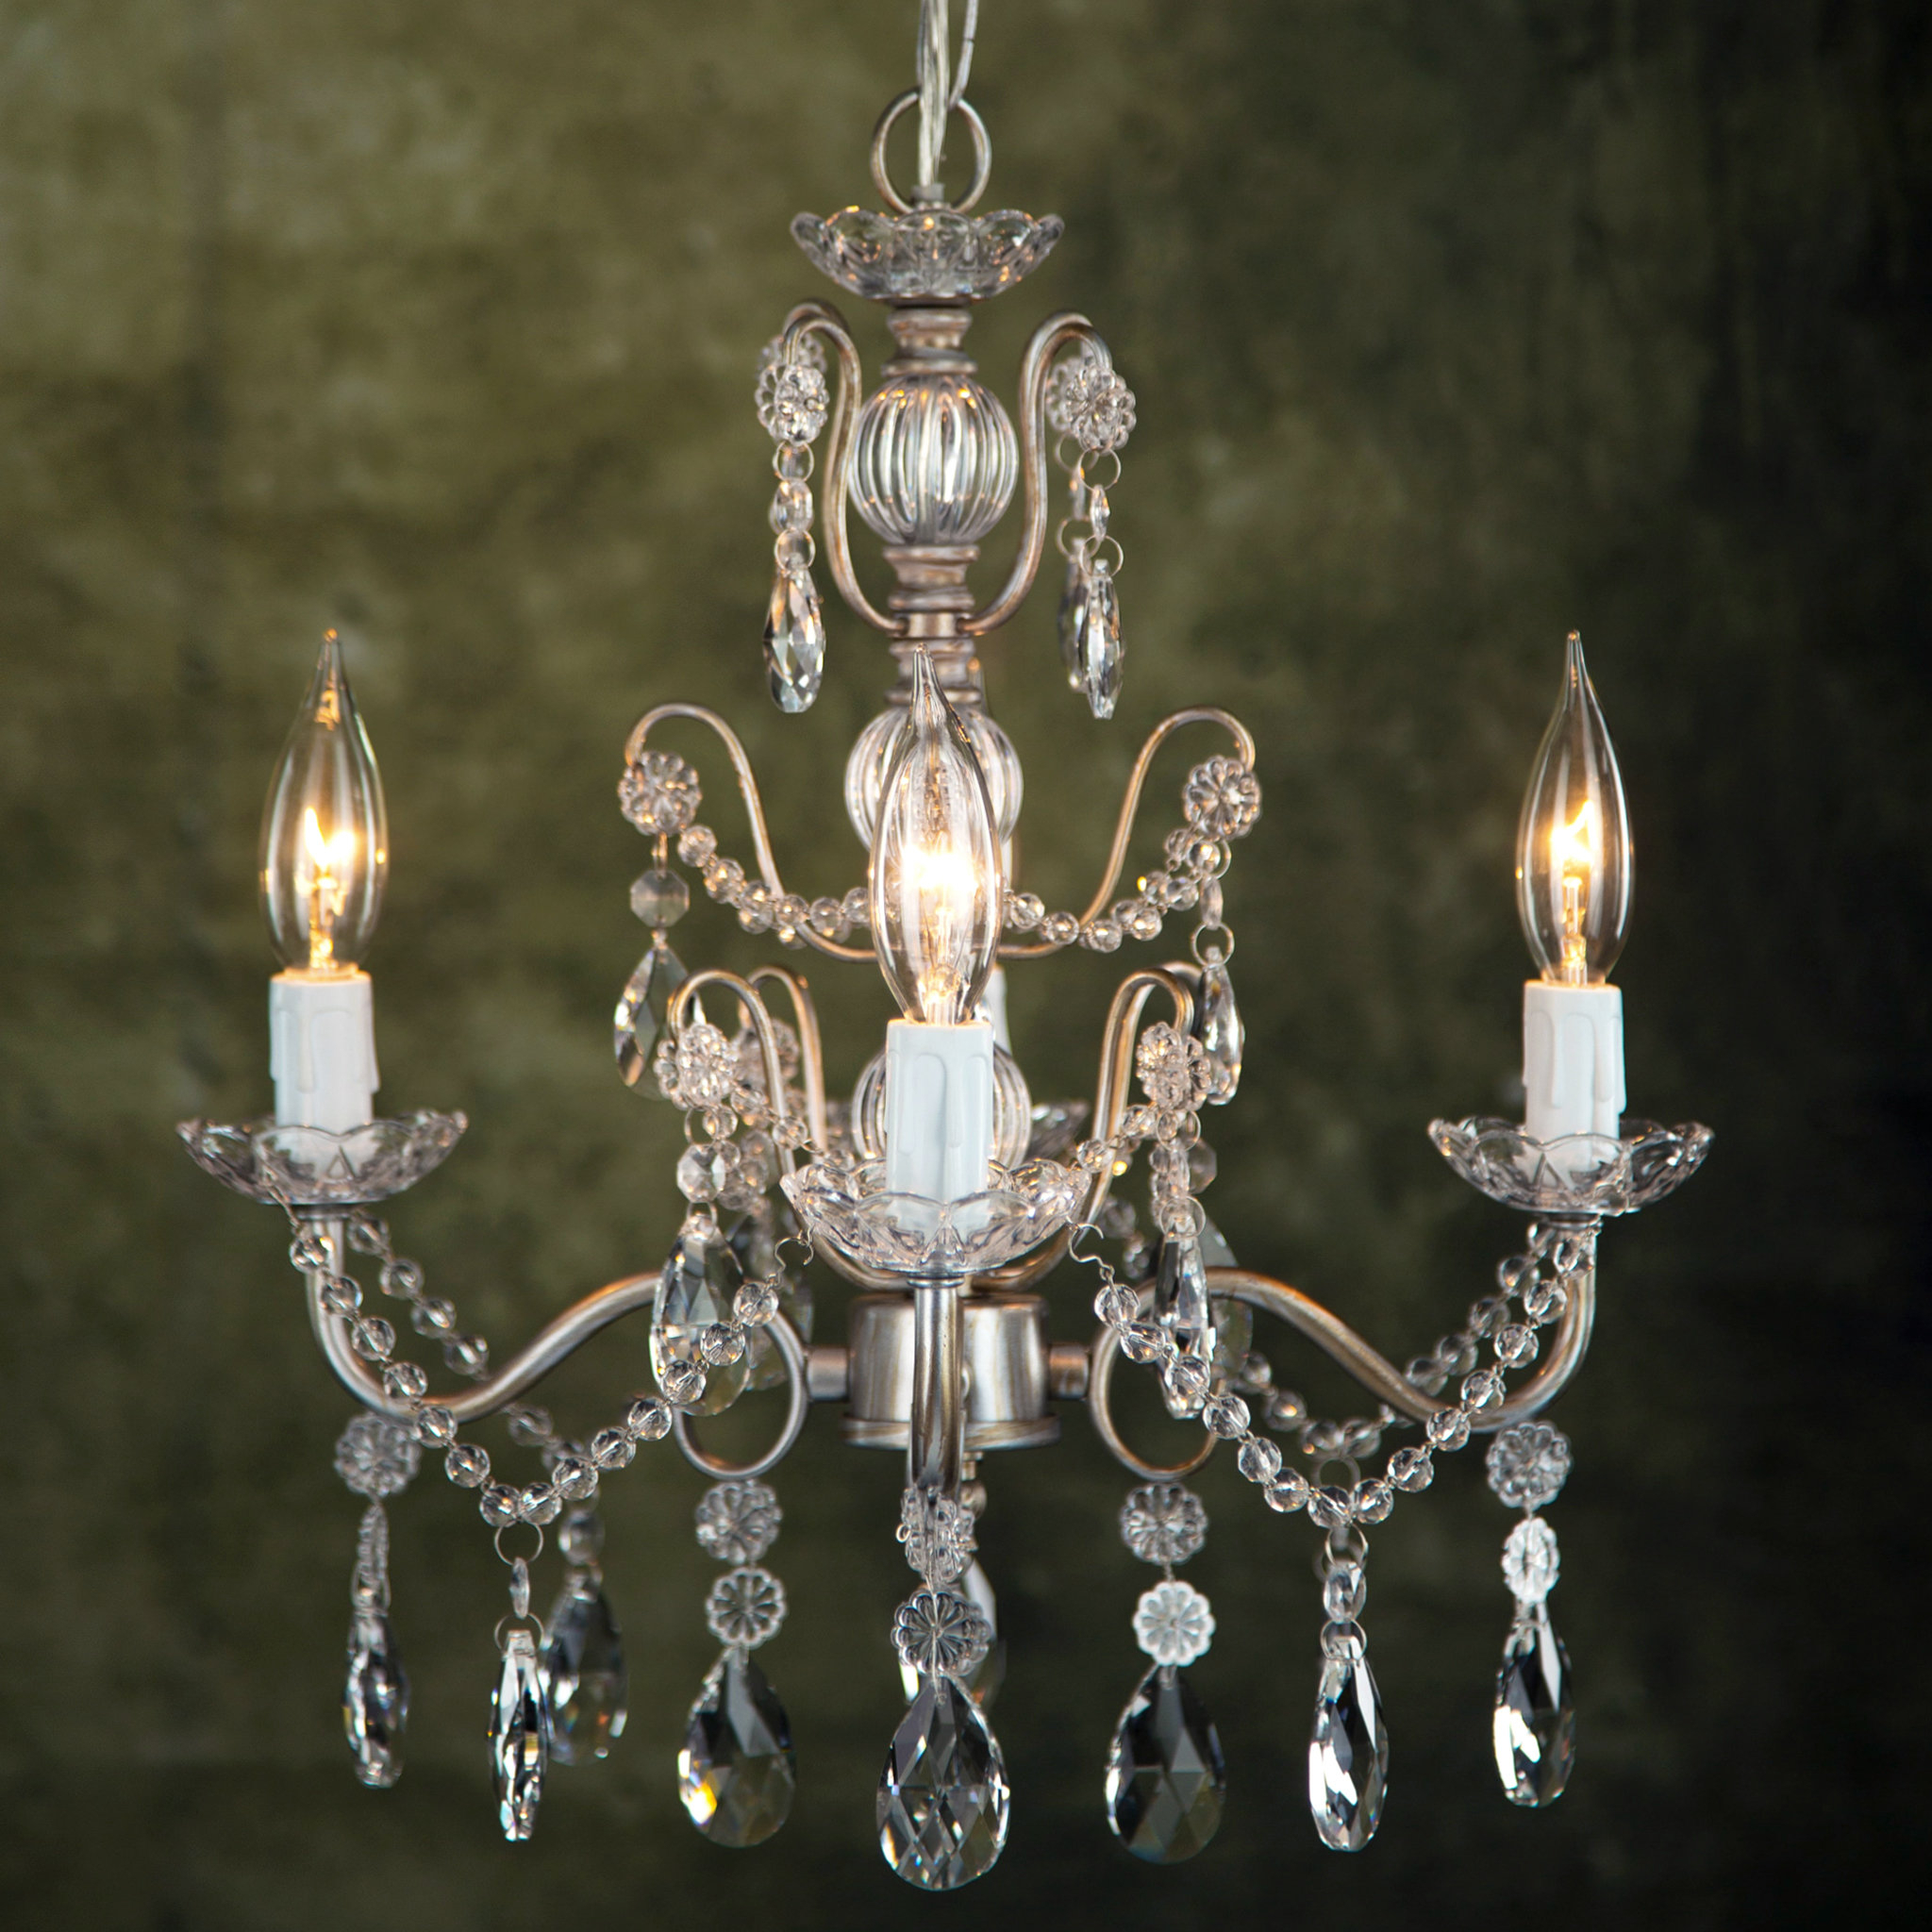 Blanchette 5 Light Candle Style Chandeliers Intended For Latest Blanchette 4 Light Candle Style Chandelier (View 6 of 20)